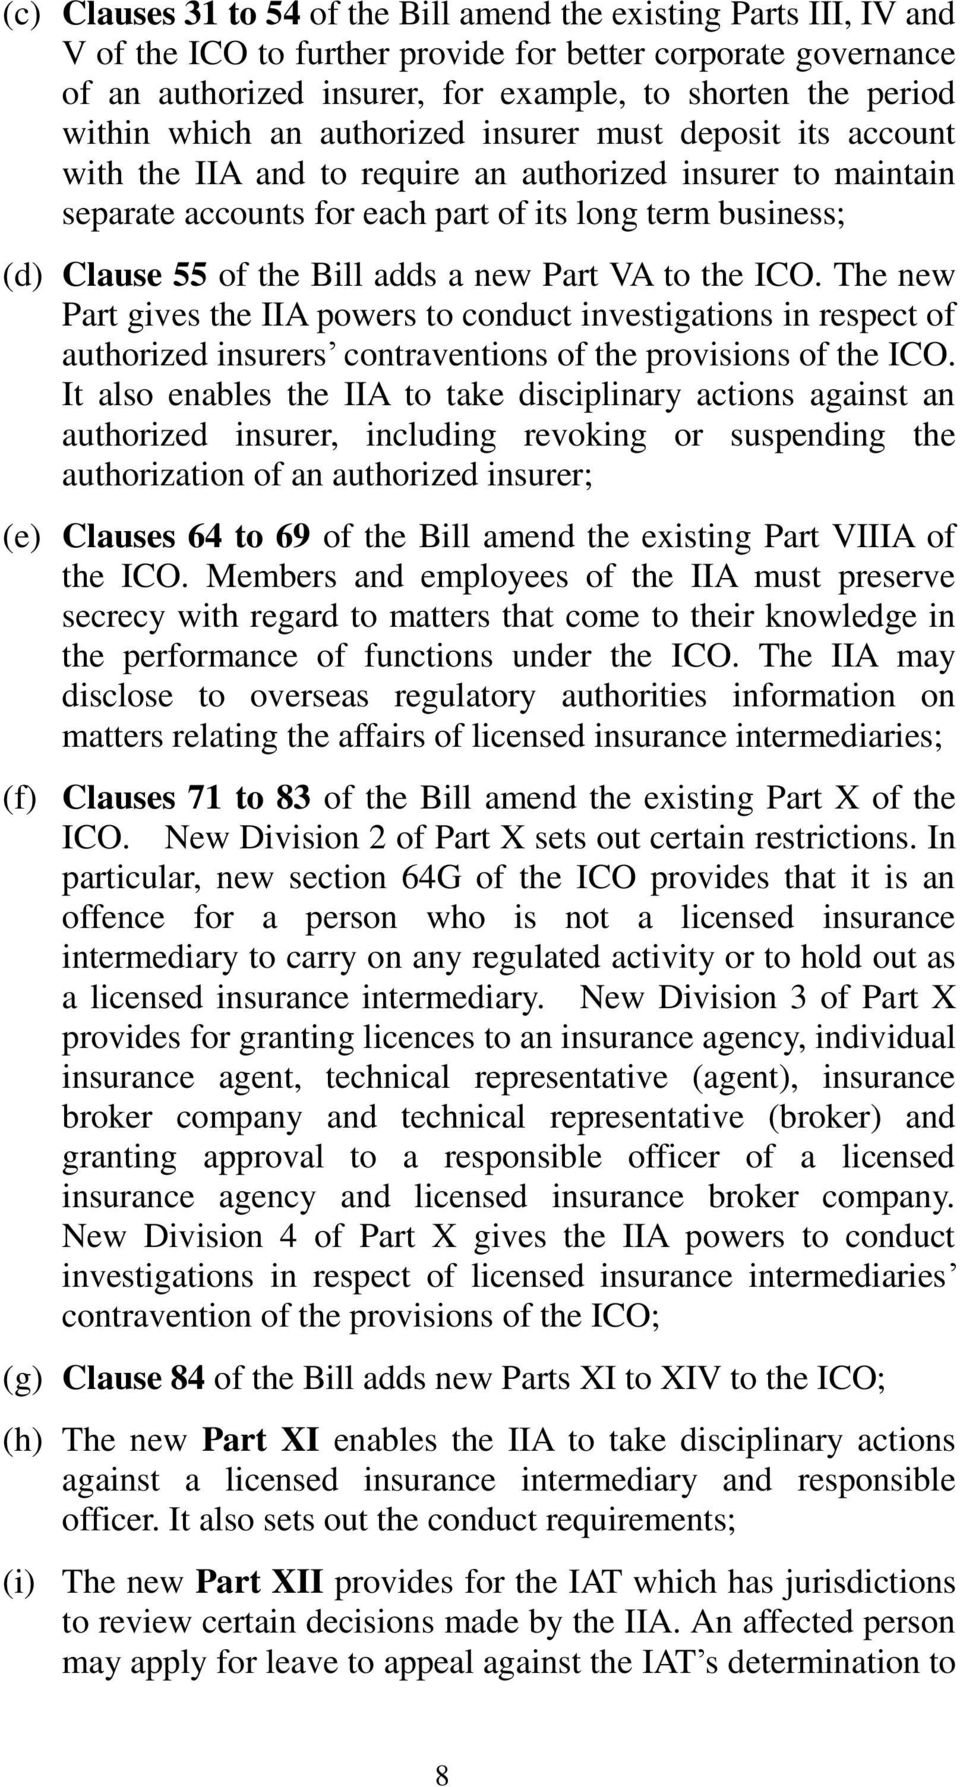 the Bill adds a new Part VA to the ICO. The new Part gives the IIA powers to conduct investigations in respect of authorized insurers contraventions of the provisions of the ICO.